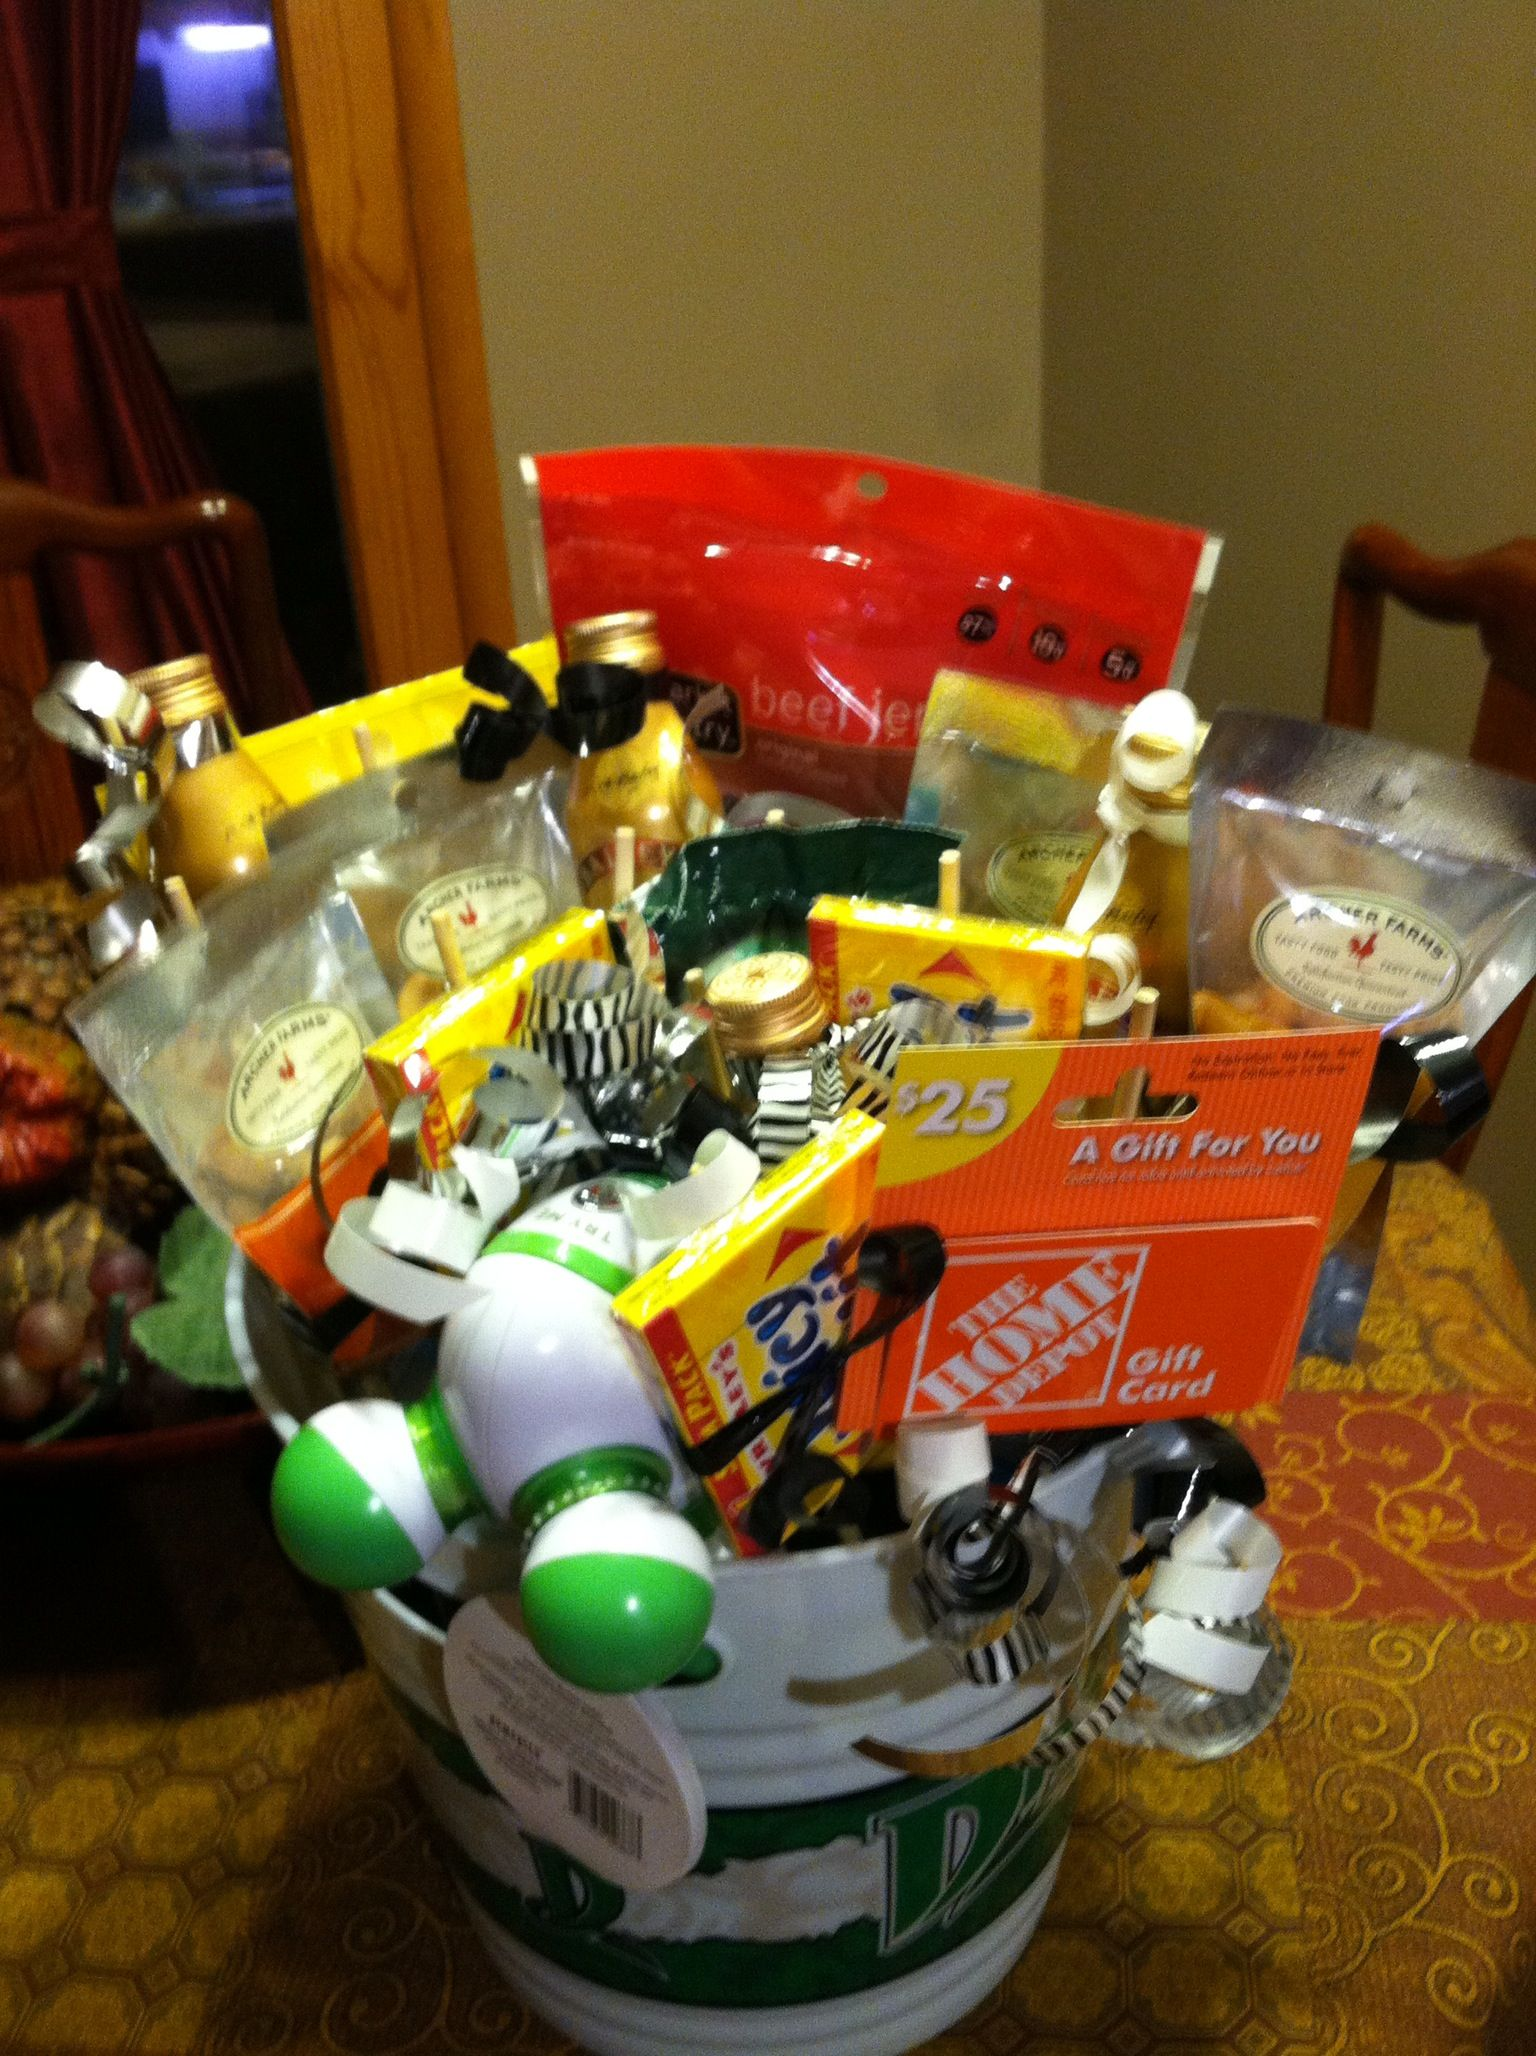 Birthday Basket For Men Made This My Dads 60th Put A Gift Card Booze Candy Jerky Trail Mix Some Of His Favorite Things